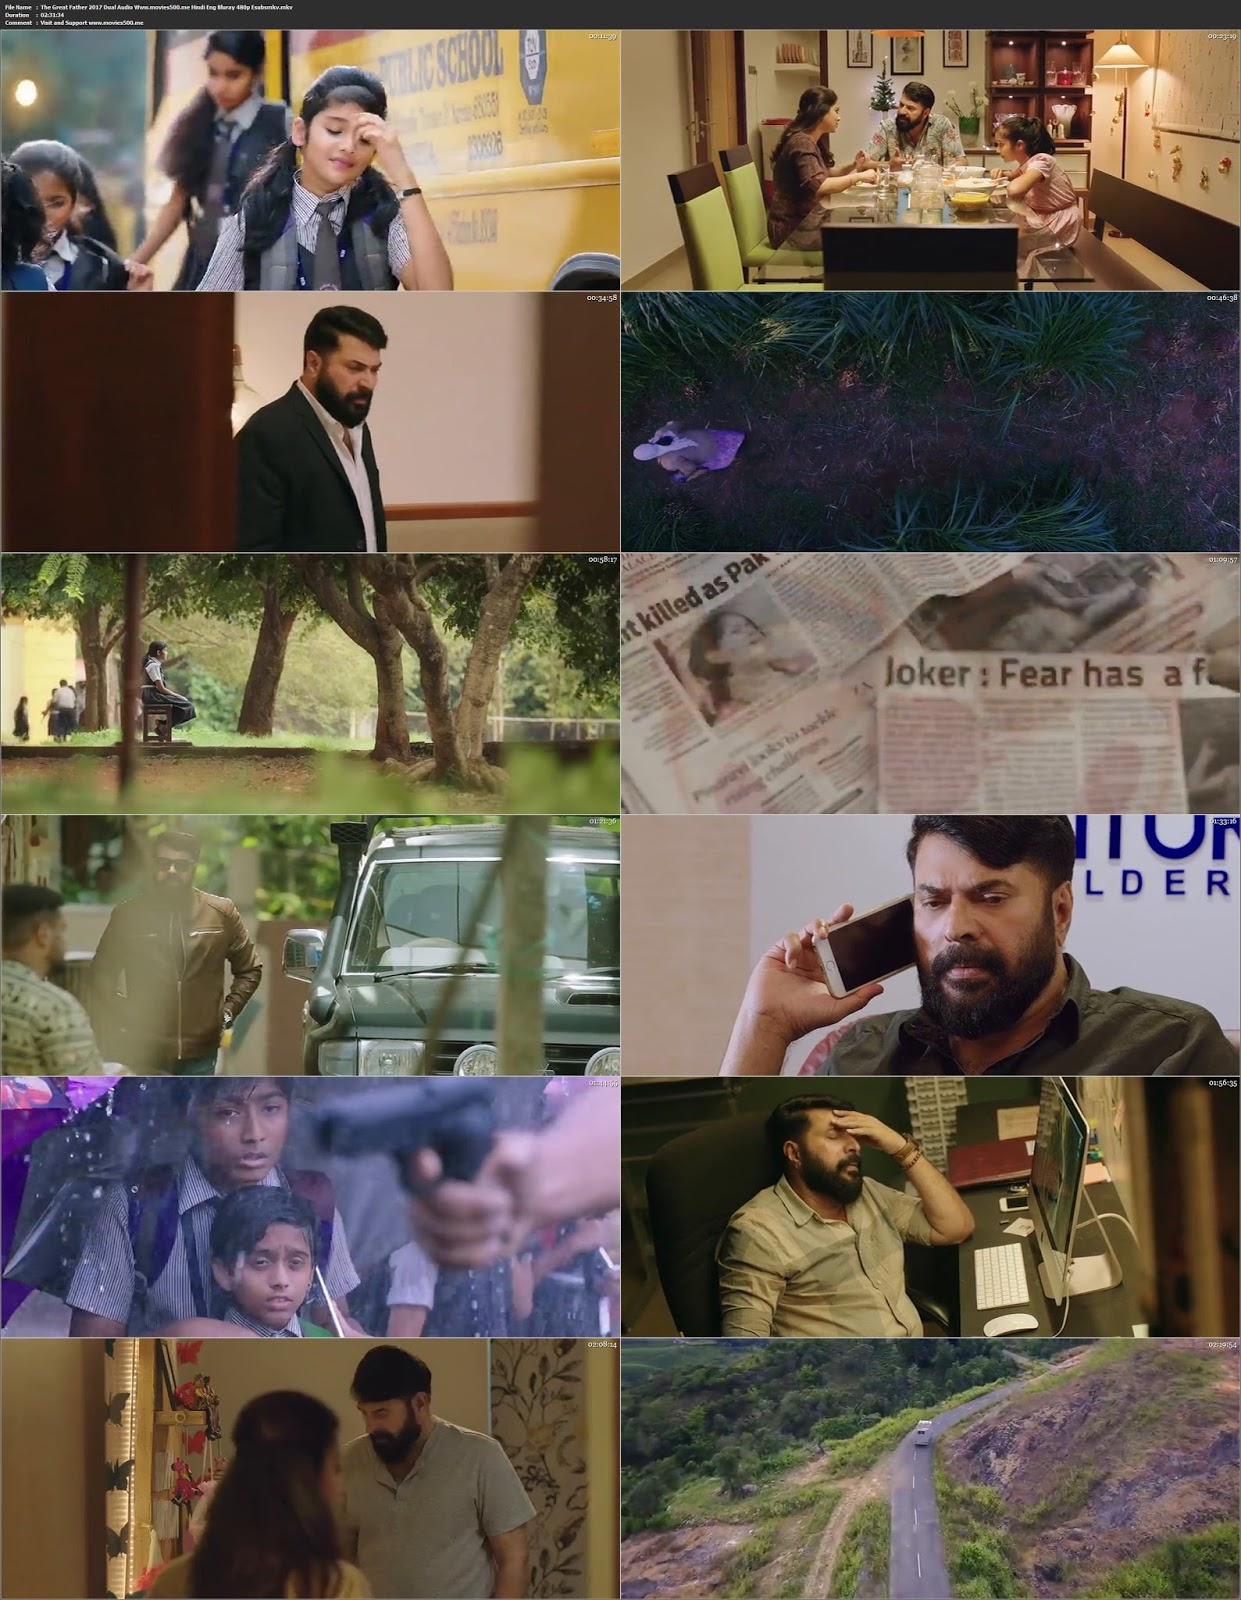 The Great Father 2017 Hindi Dubbed 400MB BluRay 480p at 9966132.com